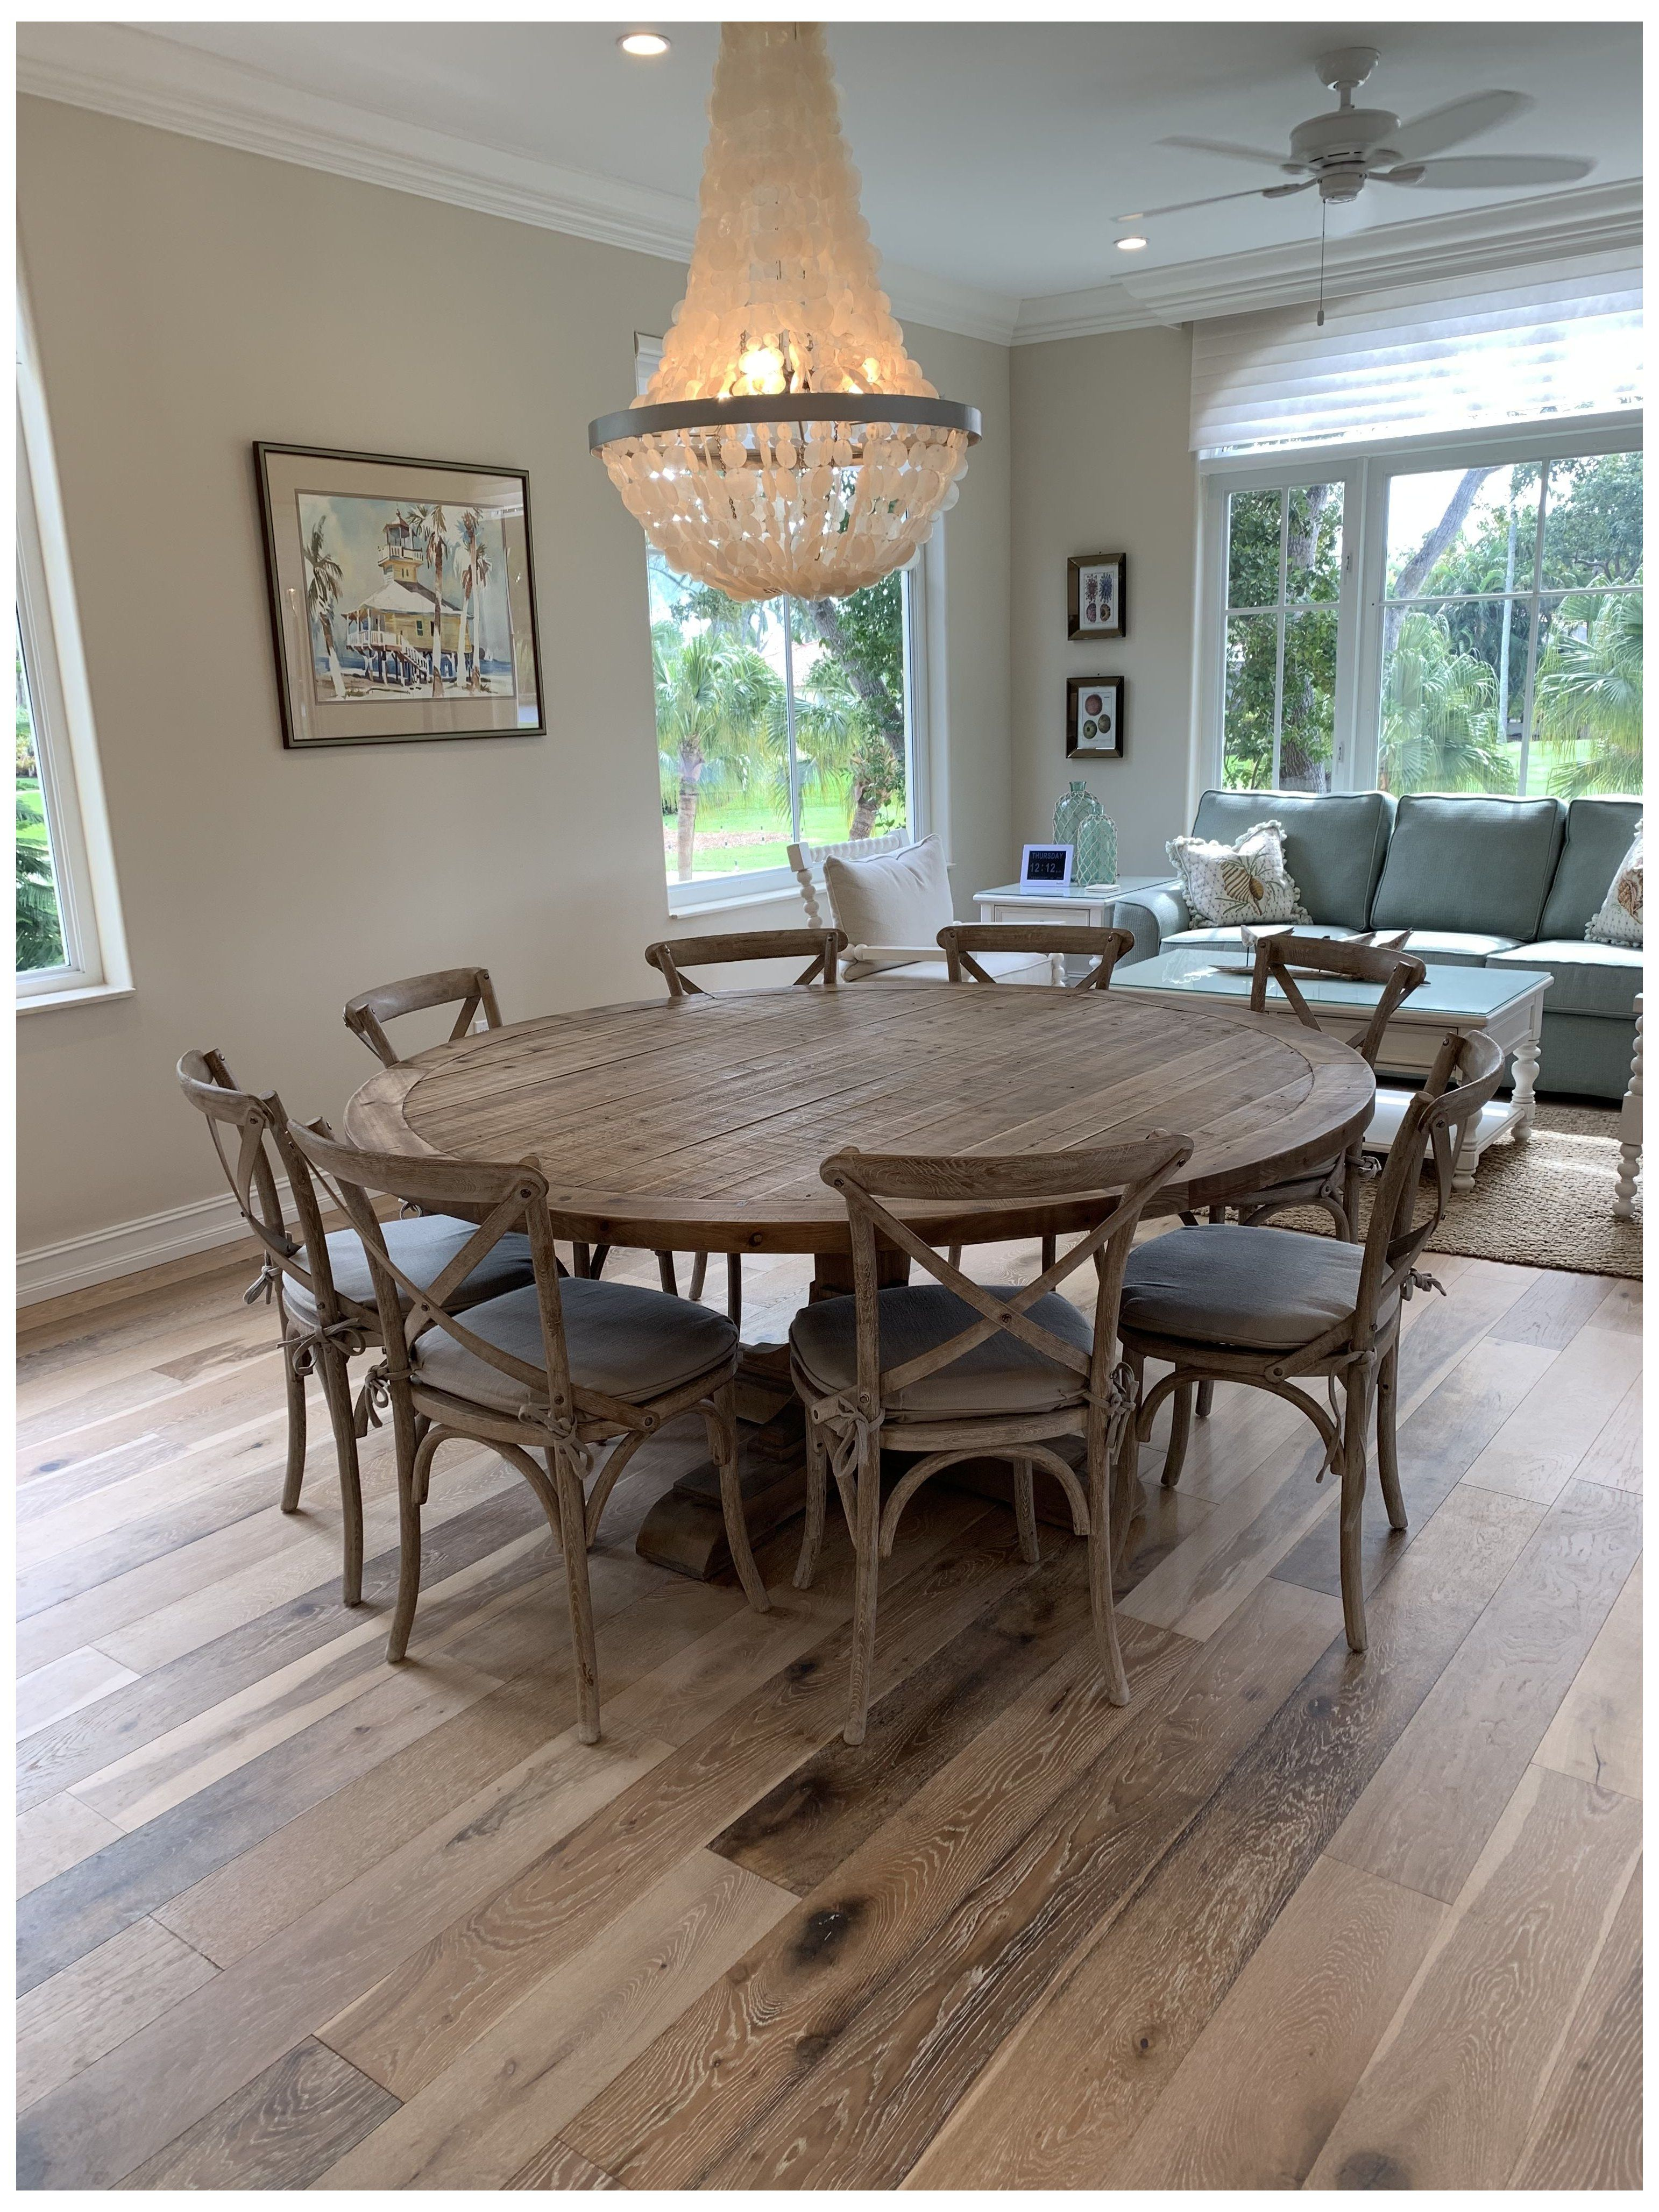 Dining Table Set For 8 Round Diningtablesetfor8round In 2021 Round Dining Room Table Round Wooden Dining Table Round Dining Room Round wooden tables and chairs